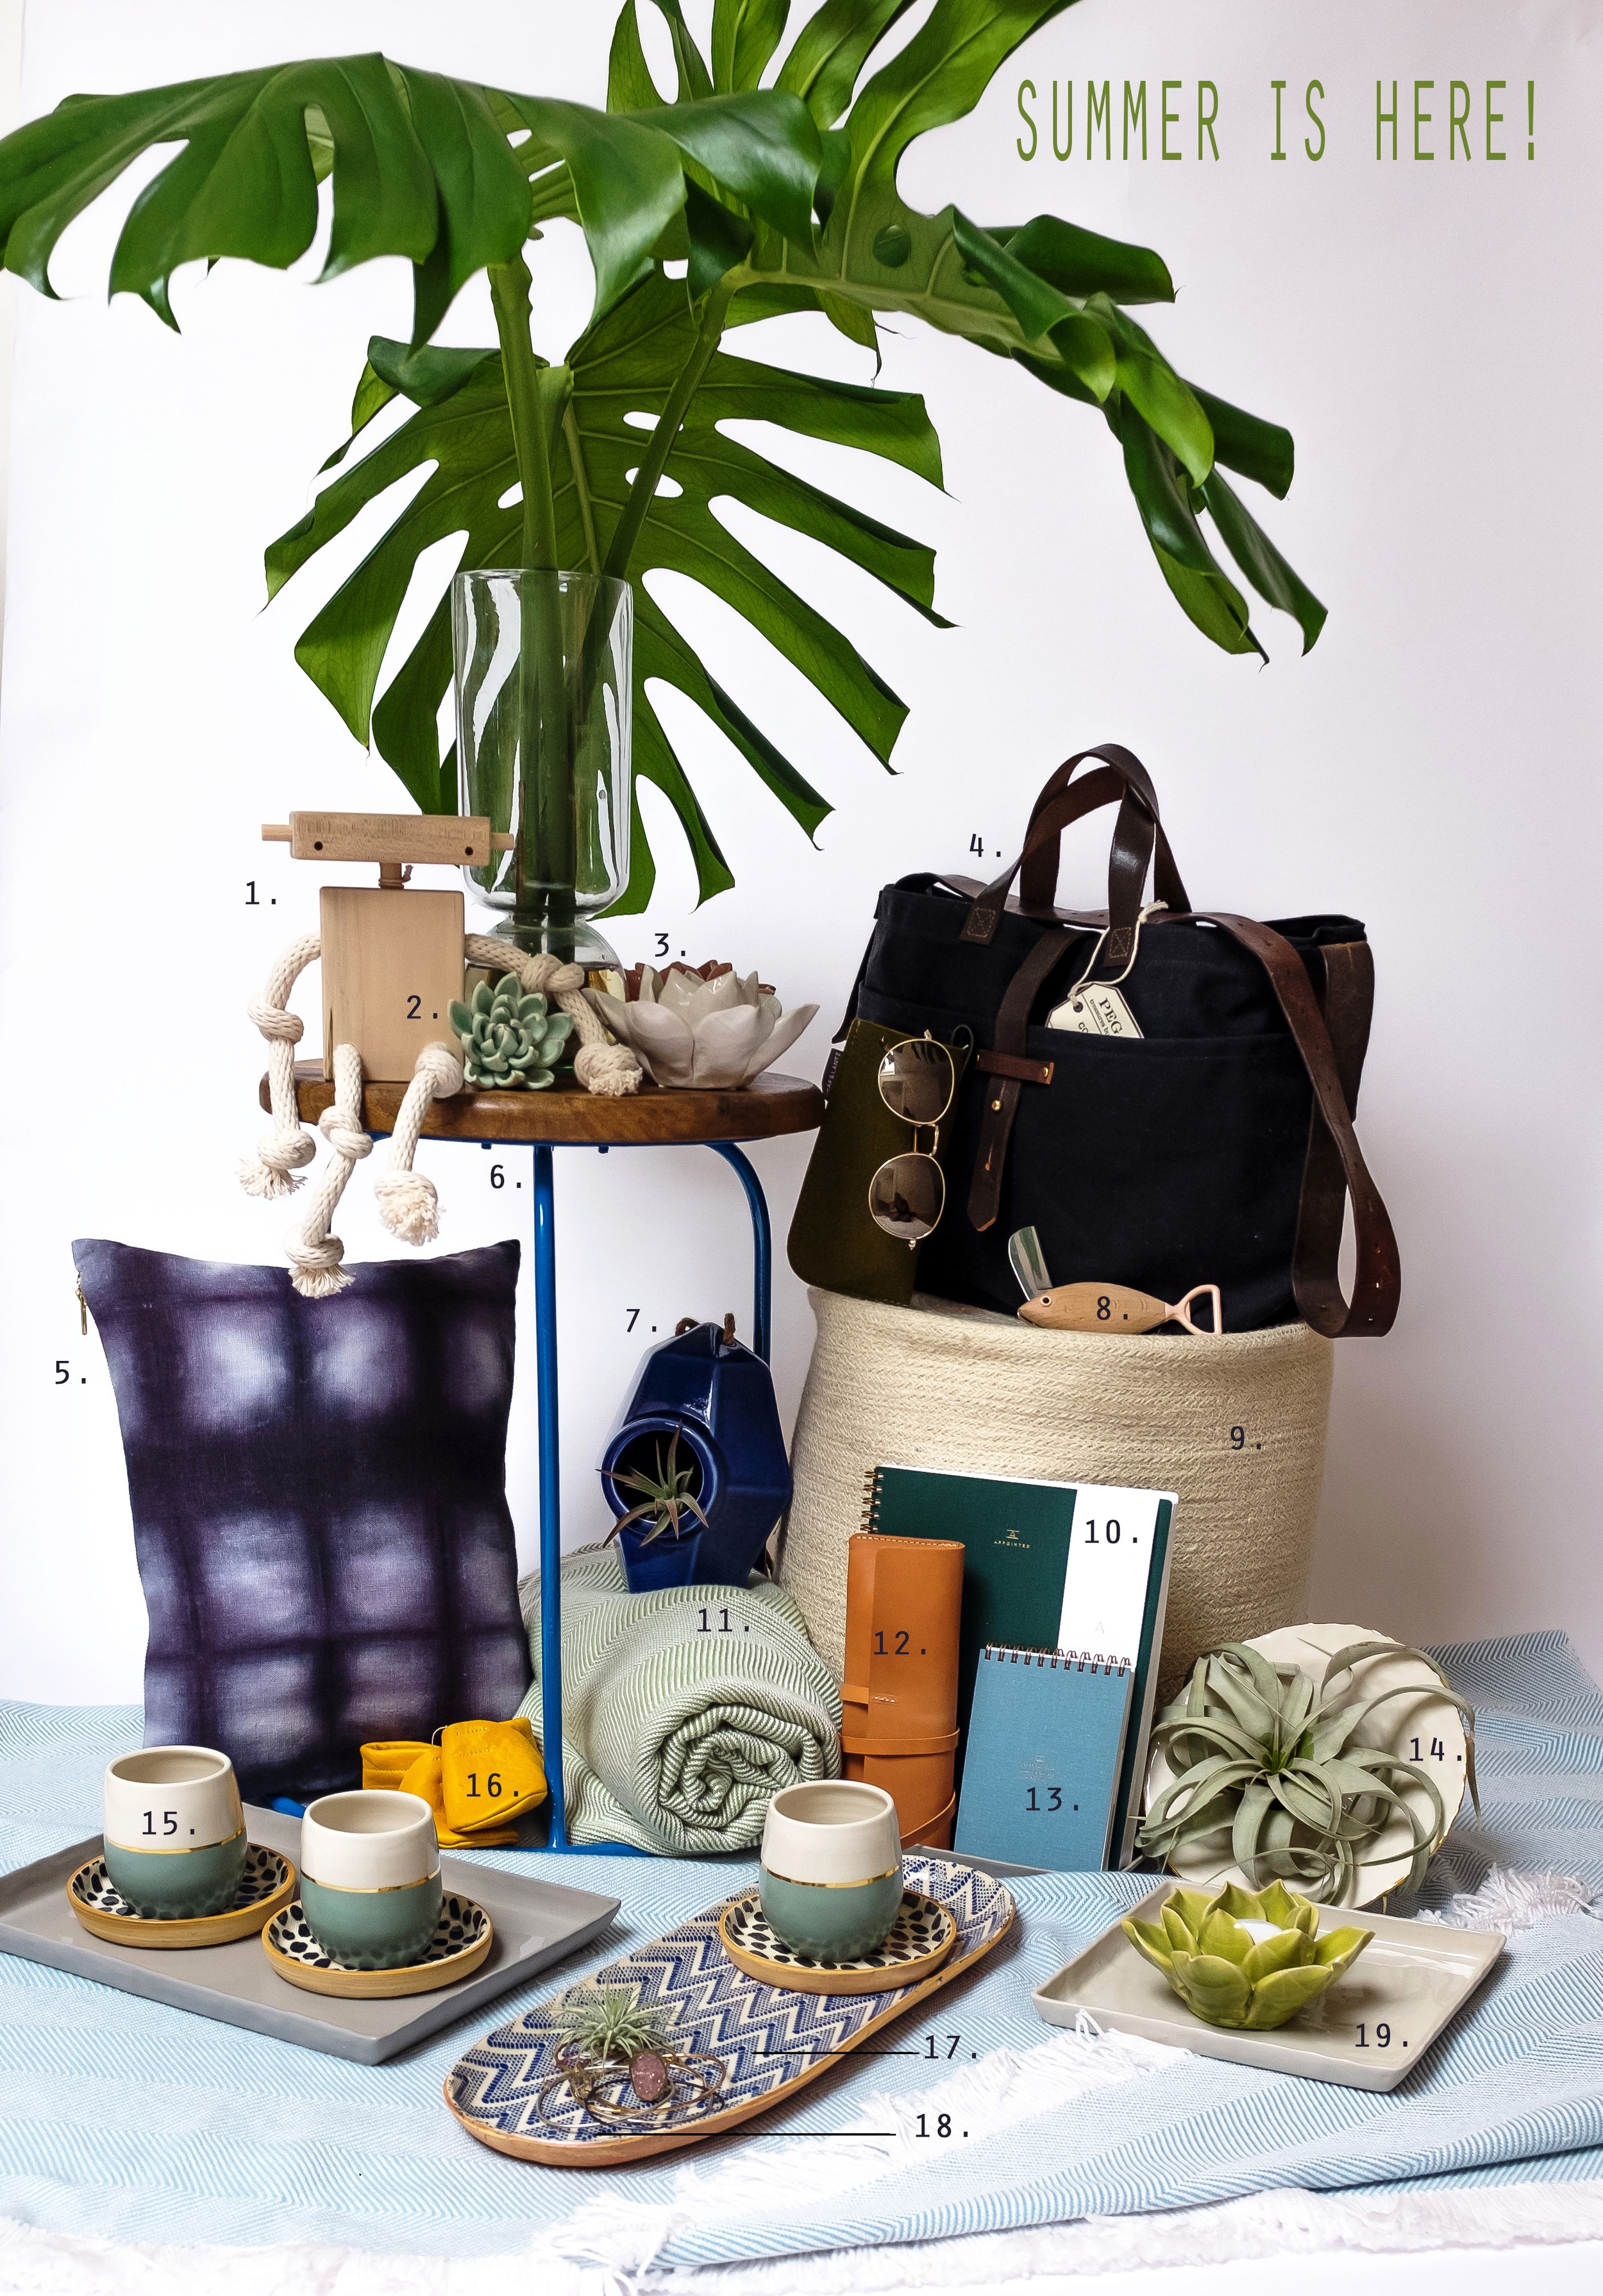 """1.  GARY THE ROBOT  $45.00  2. CERAMIC SUCCULENT $7.50  3. LOTUS TEA LIGHT HOLDER $13.00  4.  COAL WAXED CANVAS TOTE  $240.00  5.  NAVY SHIBORI PILLOW , 12X16"""" $159.00  6. GRAHAM IRON AND WOOD STOOL- AZURE $160.00  7. PERCH CERAMIC BIRD HOUSE $ 35.O0  8.  FISH KNIFE IN SEAWEED  $25.00  9.  LARGE JUTE ROUND STORAGE BASKET , BLEACH WHITE $78.00  10. HUNTER GREEN LINED NOTEBOOK $22.00  11.  GINGKO/NATURAL SUNBRELLA THROW  $299.00  12. LEATHER PENCIL CASE $68.00  13. NOTEPAD IN CHAMBRAY BLUE $15.00  14.  MEDIUM PINCHED BOWL WITH GOLD RIM  $136.00  15.  GREEN CUP WITH GOLD STRIPE  $45.00  16.  GOLDEN LEATHER BOOTIES  $45.00  17.  LARGE CANAPE IN CHEVRON COBALT  $115.00  18.  HERKIMER & DRUSY CUFF  $136.00  19. FLEET CERAMIC TRAY, WHITE SQUARE $36.00"""